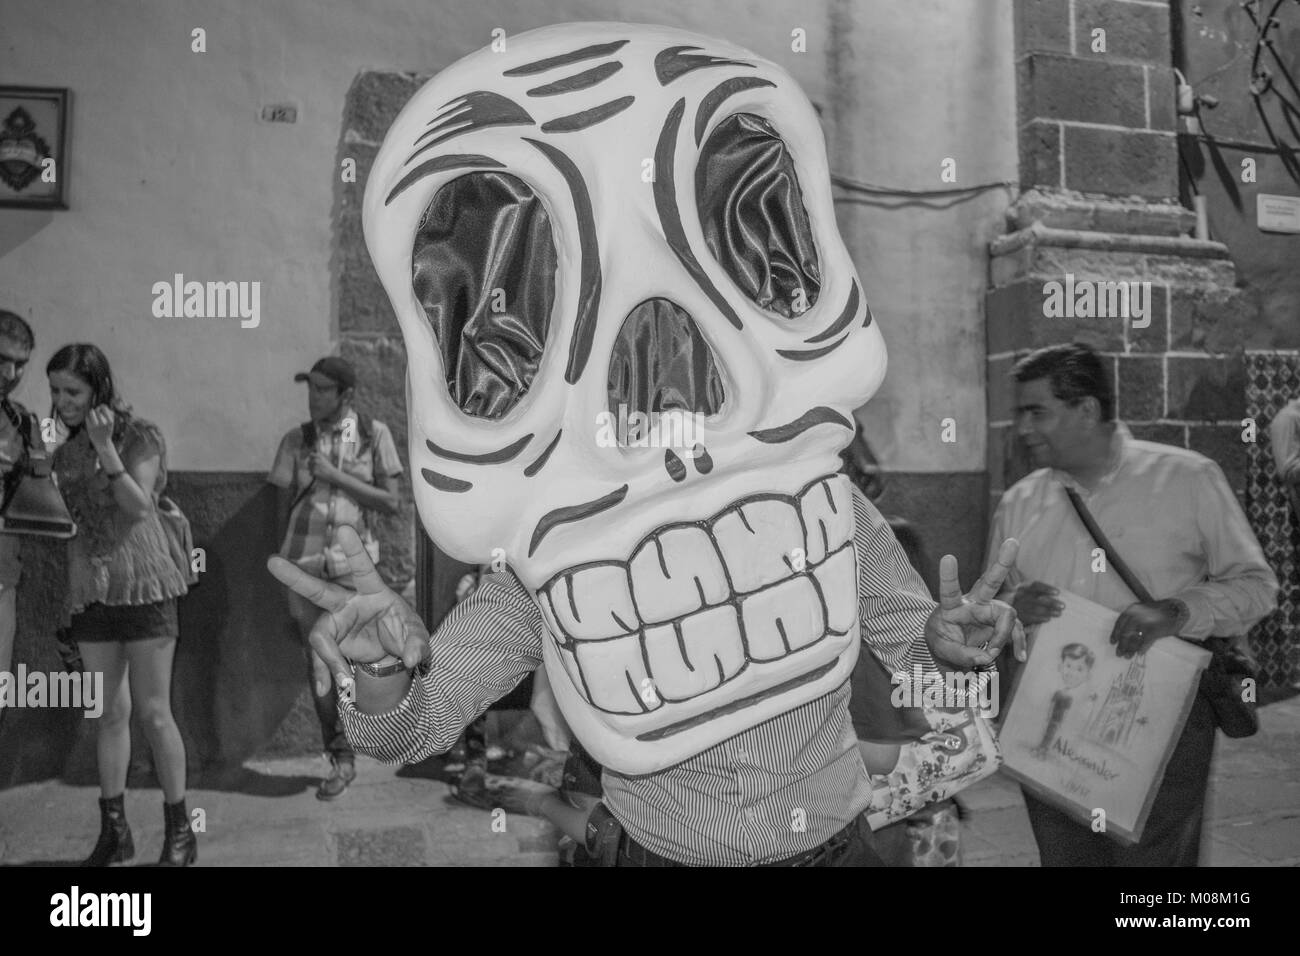 Giant skull mask- celebratory costume and masks for the Day of the Dead festivities, in San Miguel de Allende, Mexico - Stock Image